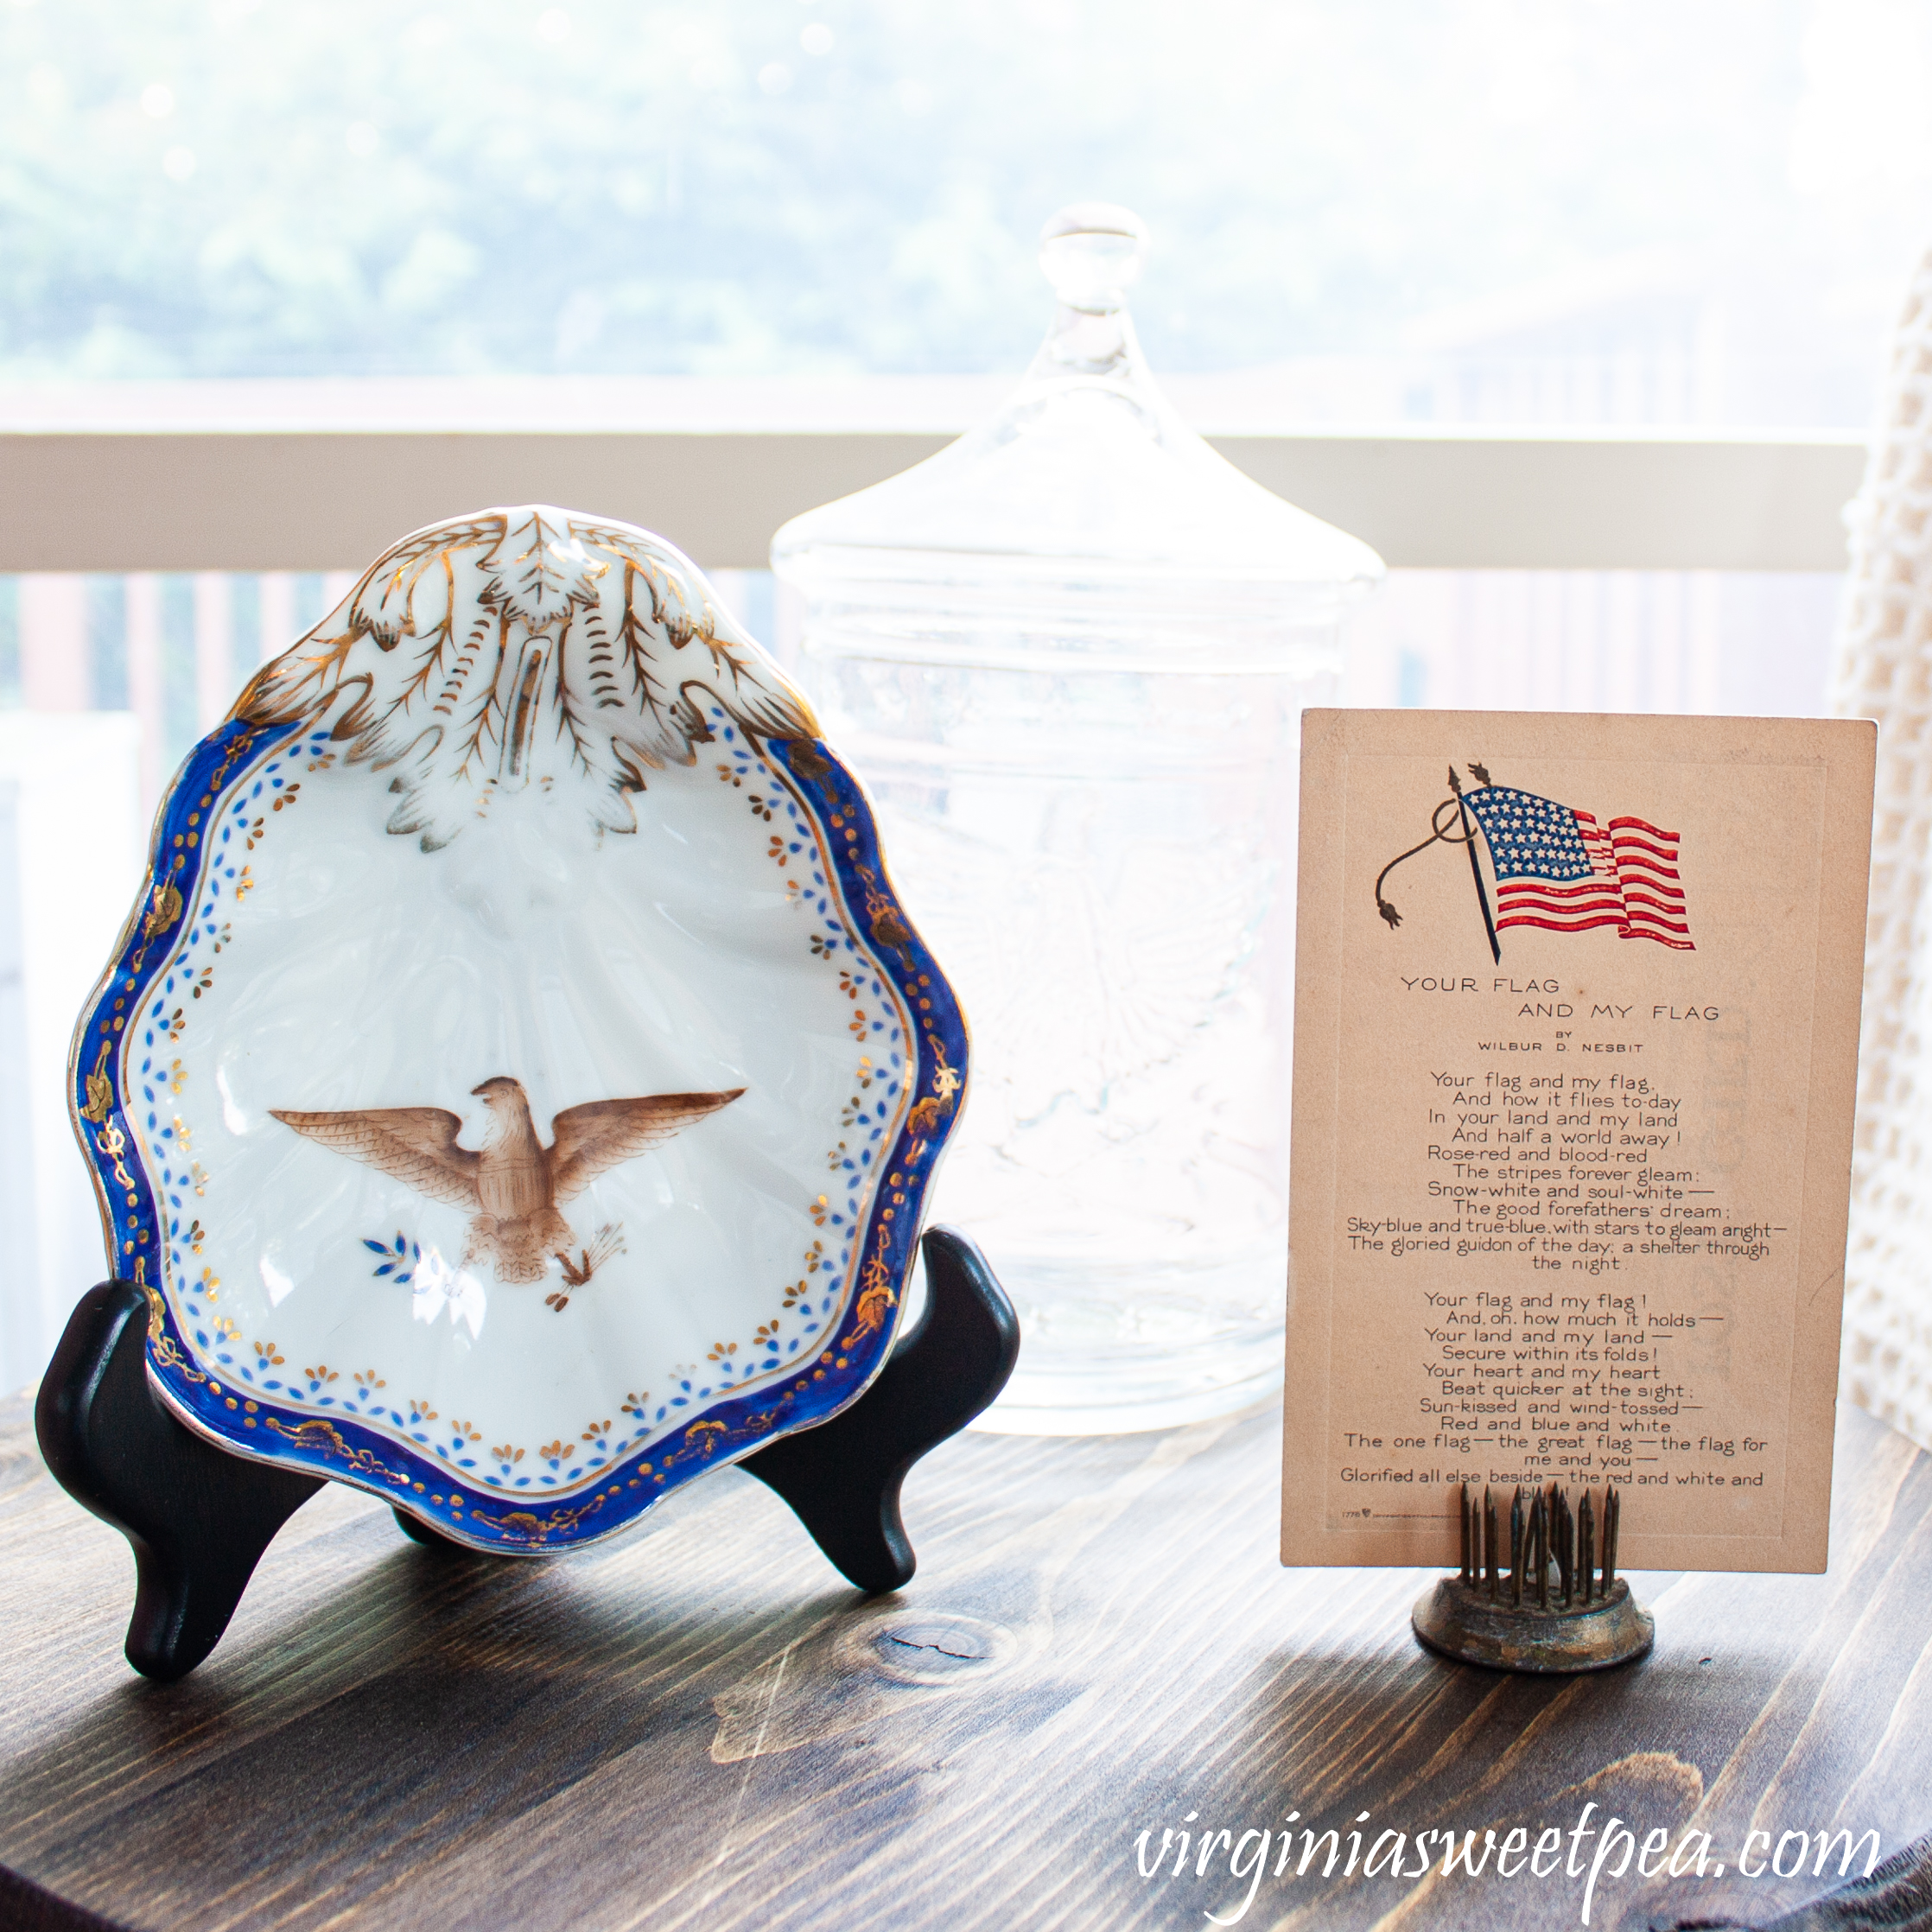 Vintage china bowl with an eagle and a vintage flag postcard